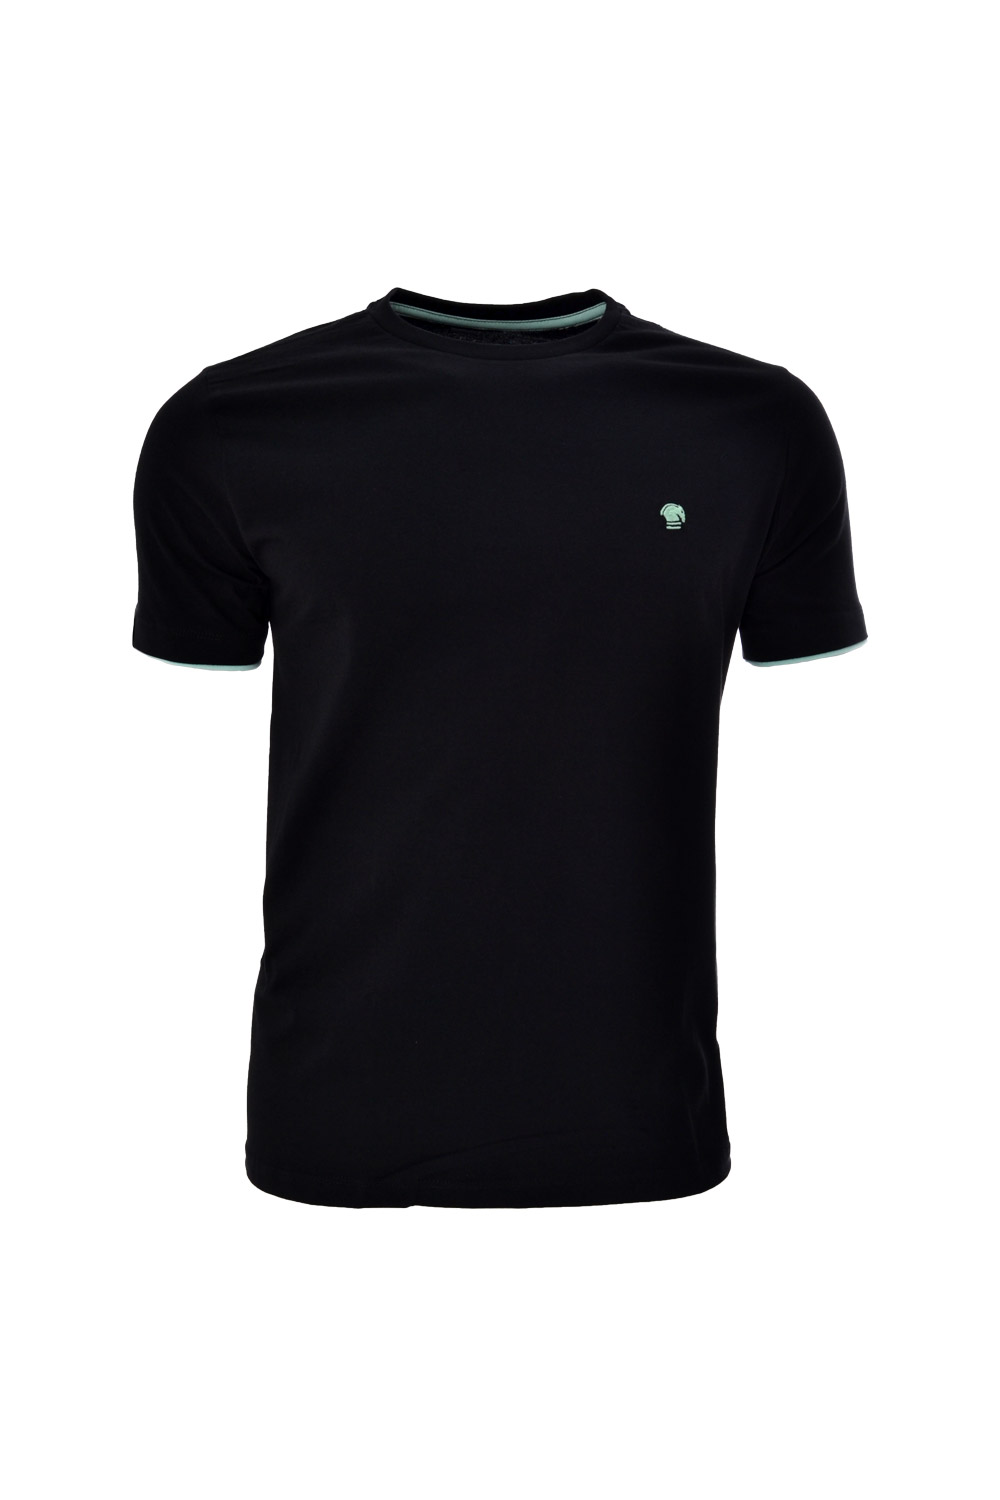 CAMISETA MC BLUES SUPER SLIM ALGODAO GOLA C LISO PRETO